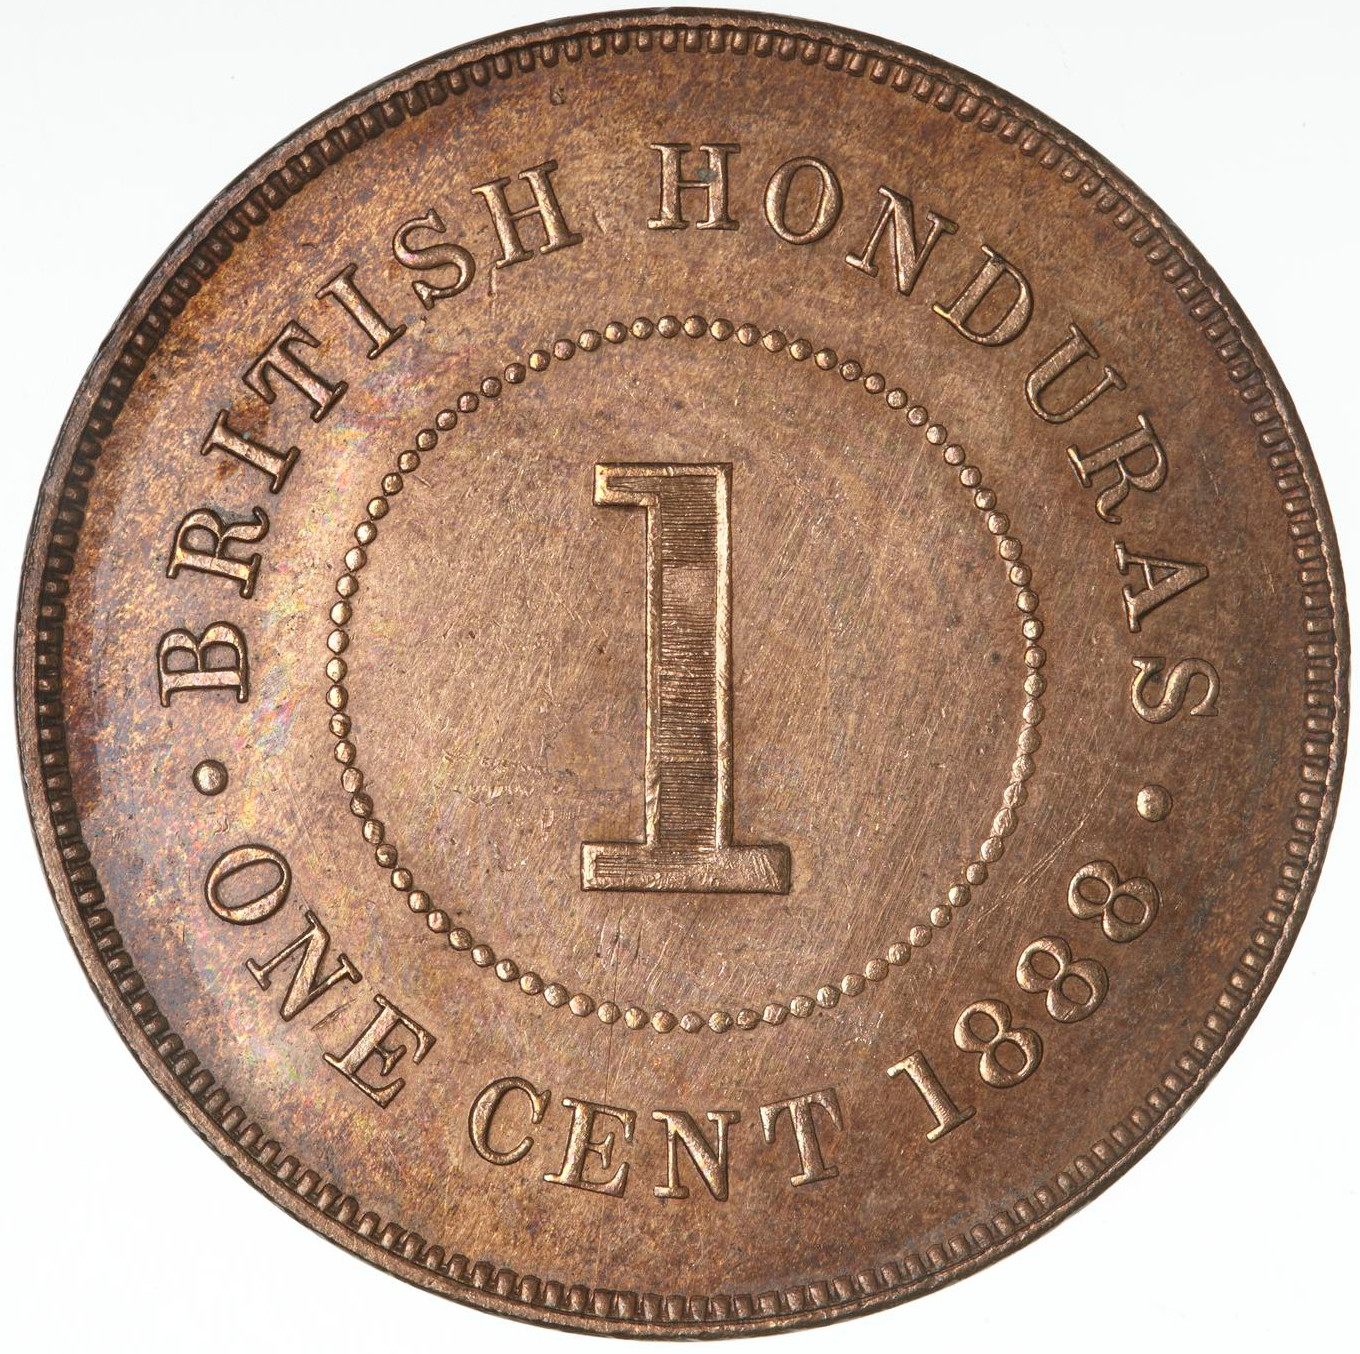 One Cent: Photo Coin - 1 Cent, British Honduras (Belize), 1888